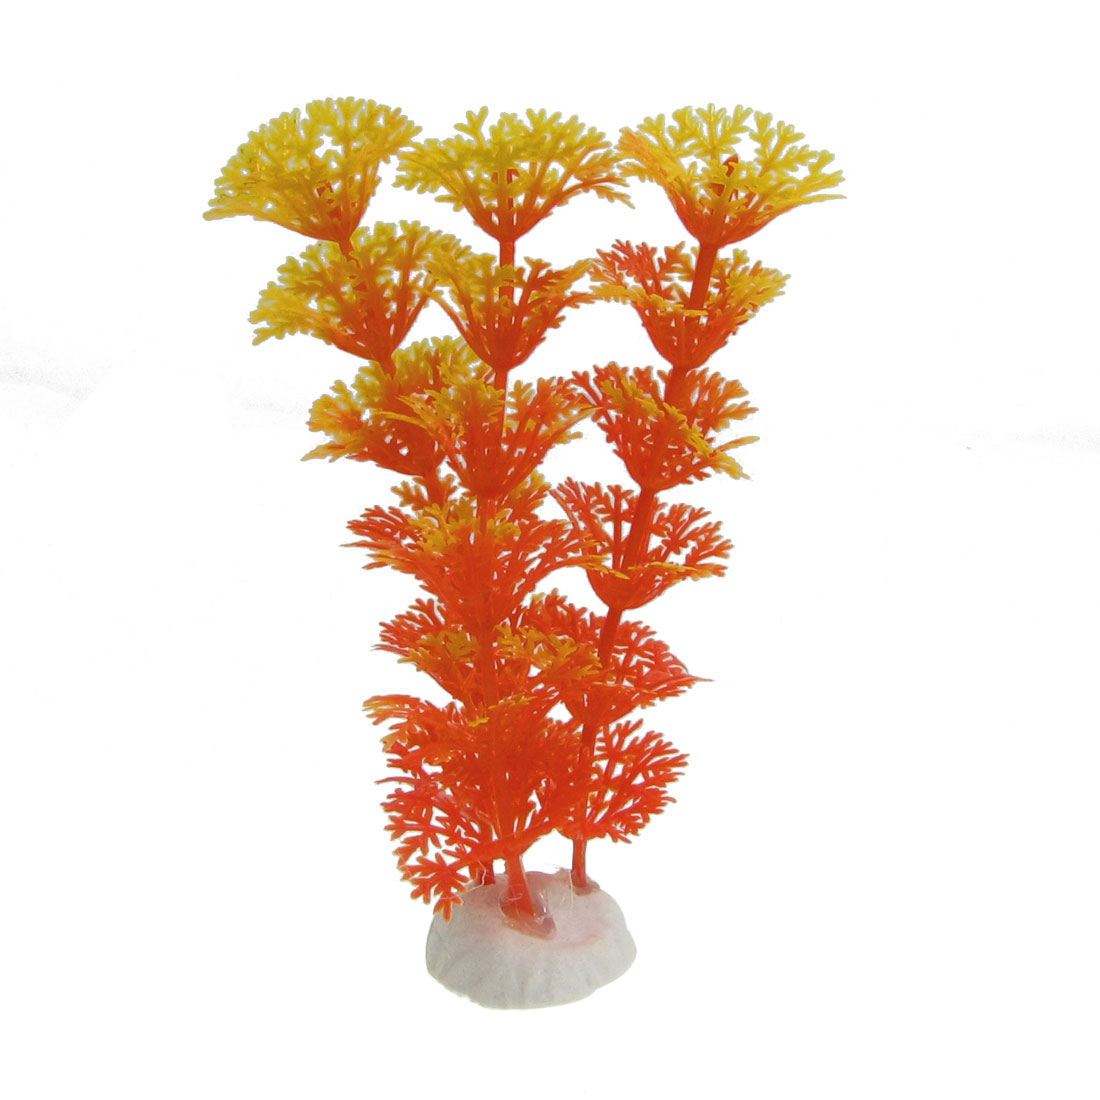 "Aquarium Tank Silicone Artificial Plant Decor 3.9"" Height Orange"